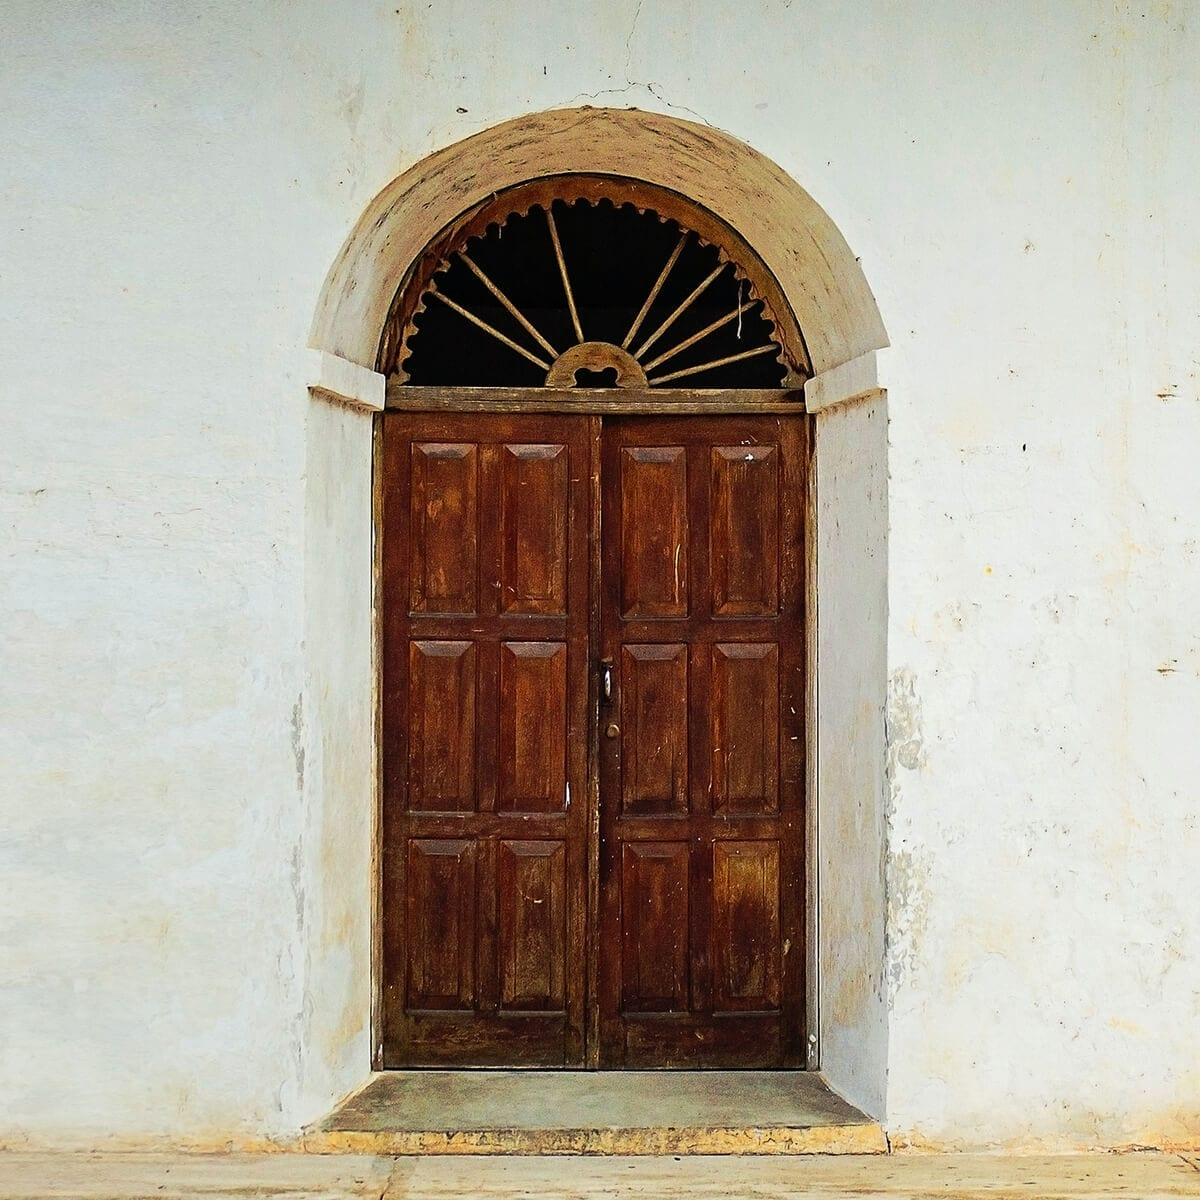 The Sanctity of a Door: How Racist Policing Dishonors Spiritual Values